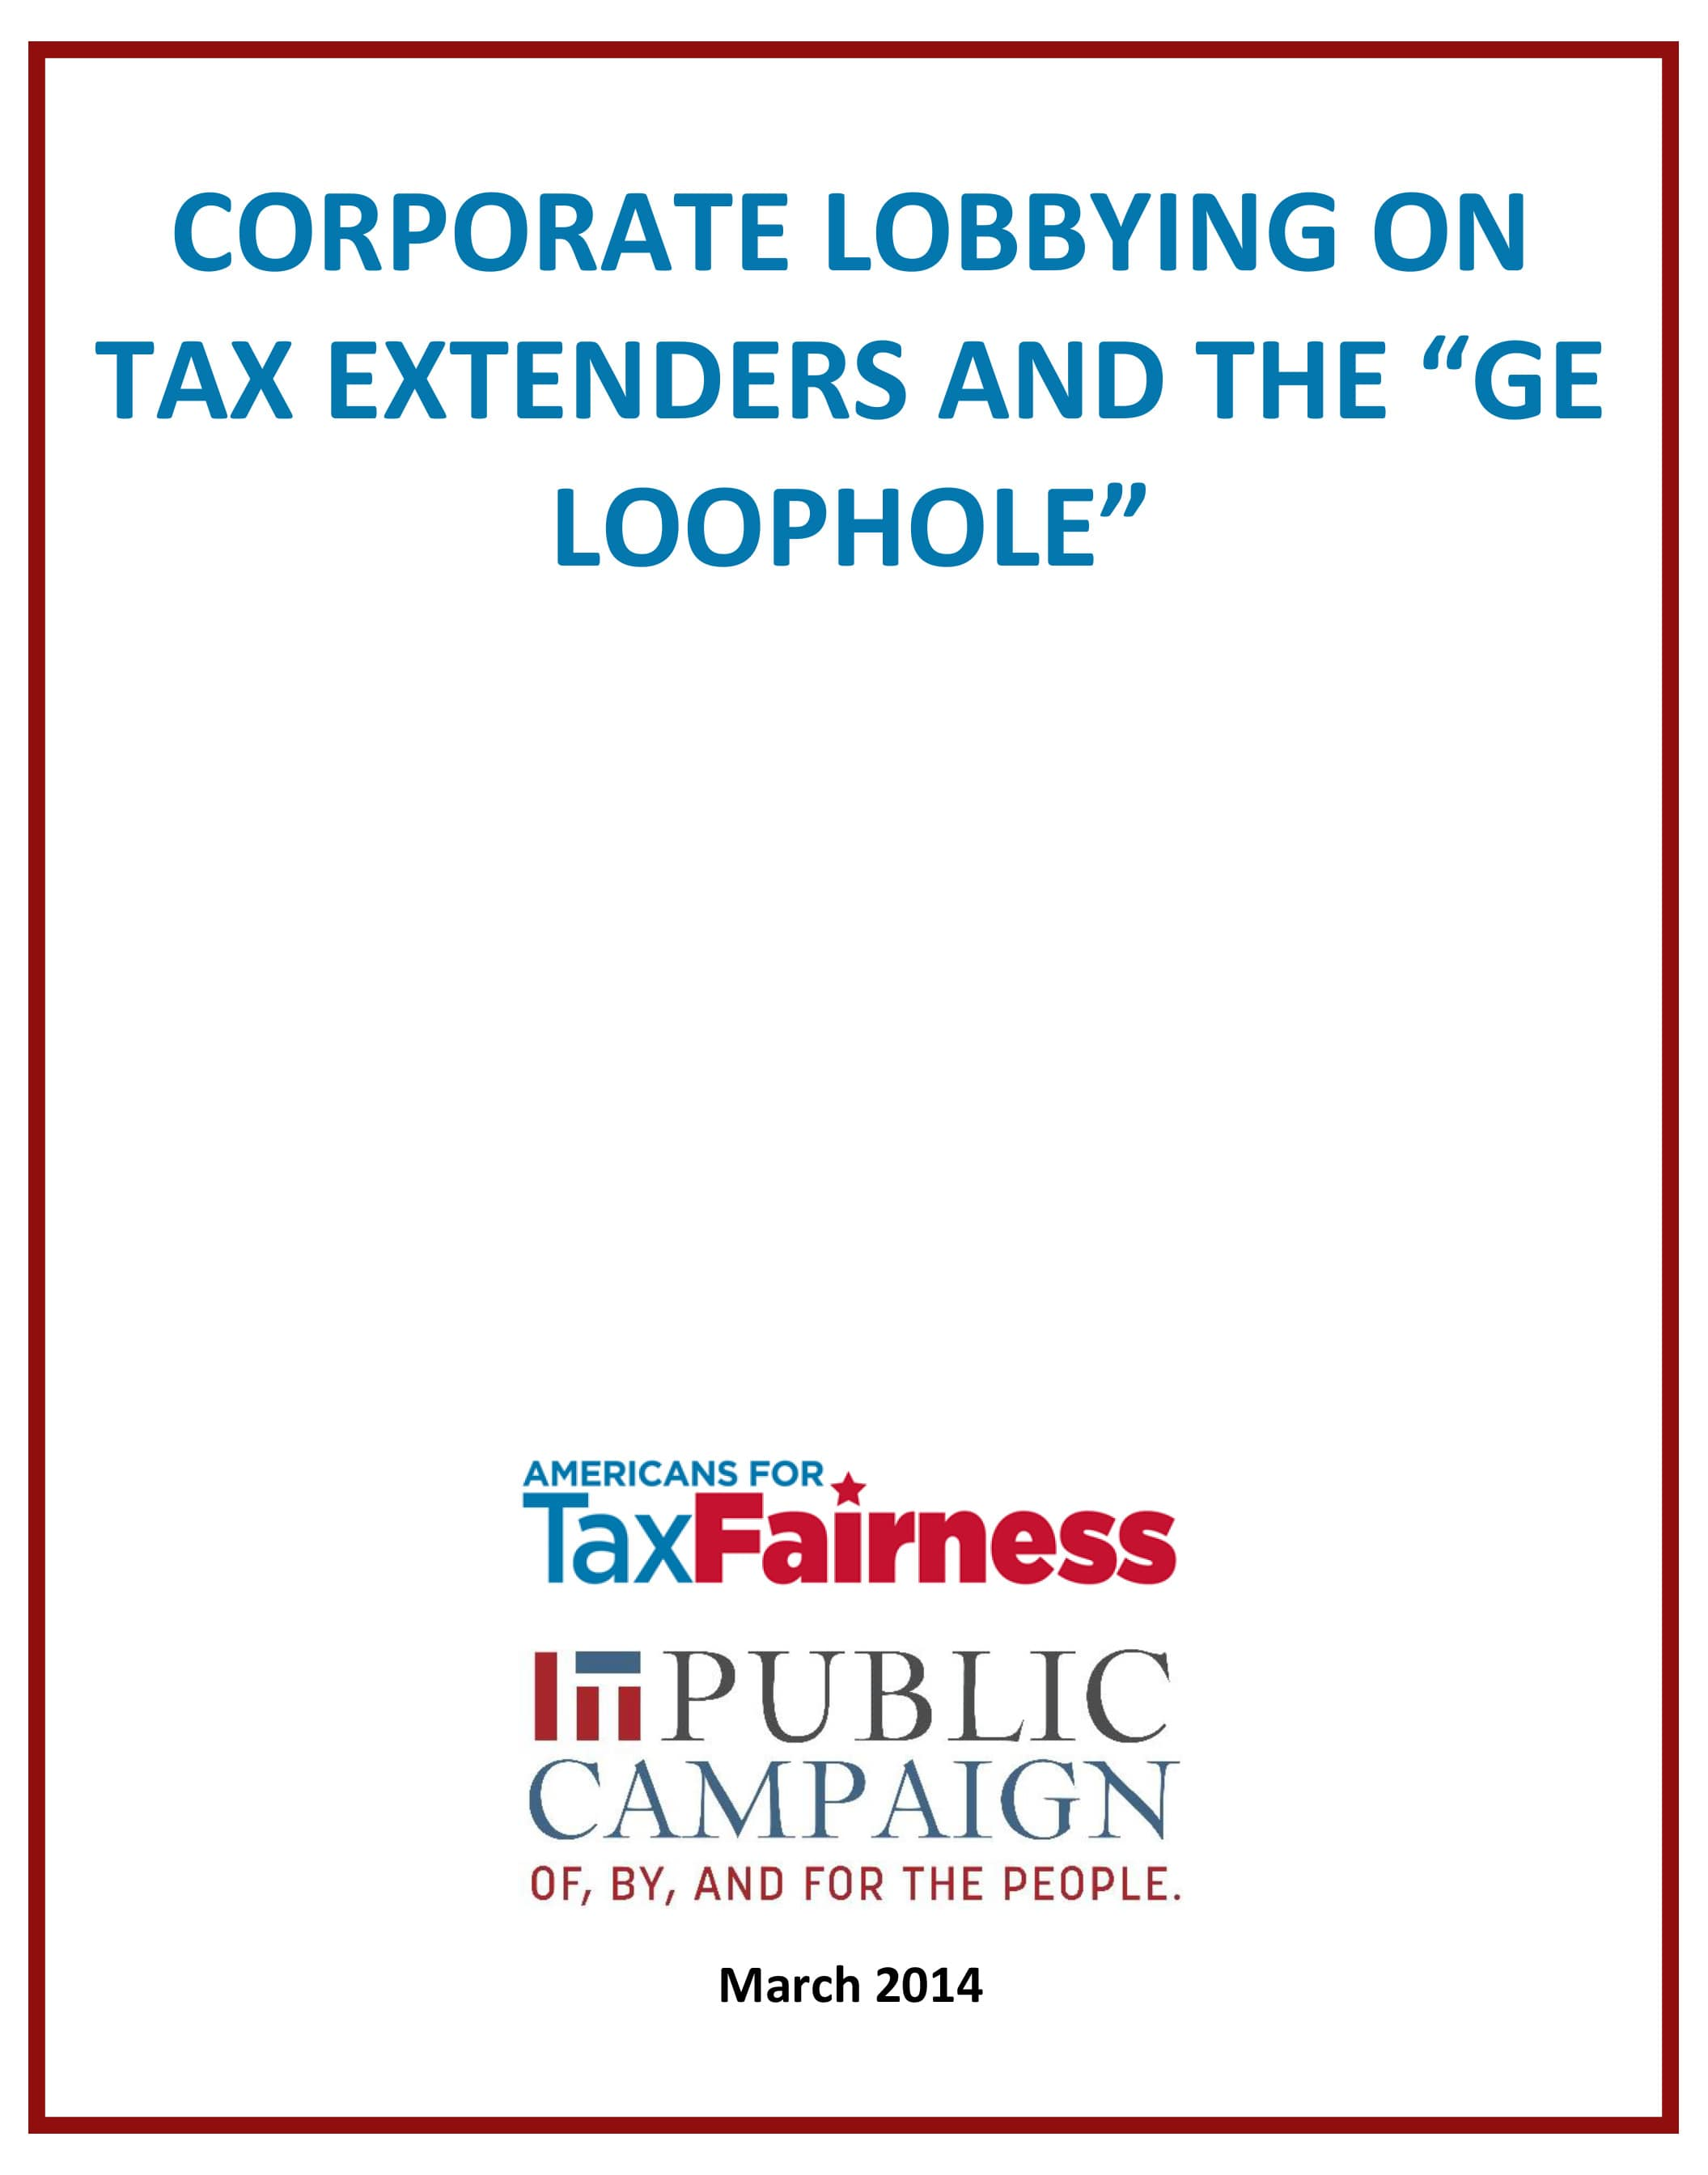 Corporate Lobbying on Tax Extenders and the 'GE Loophole' cover